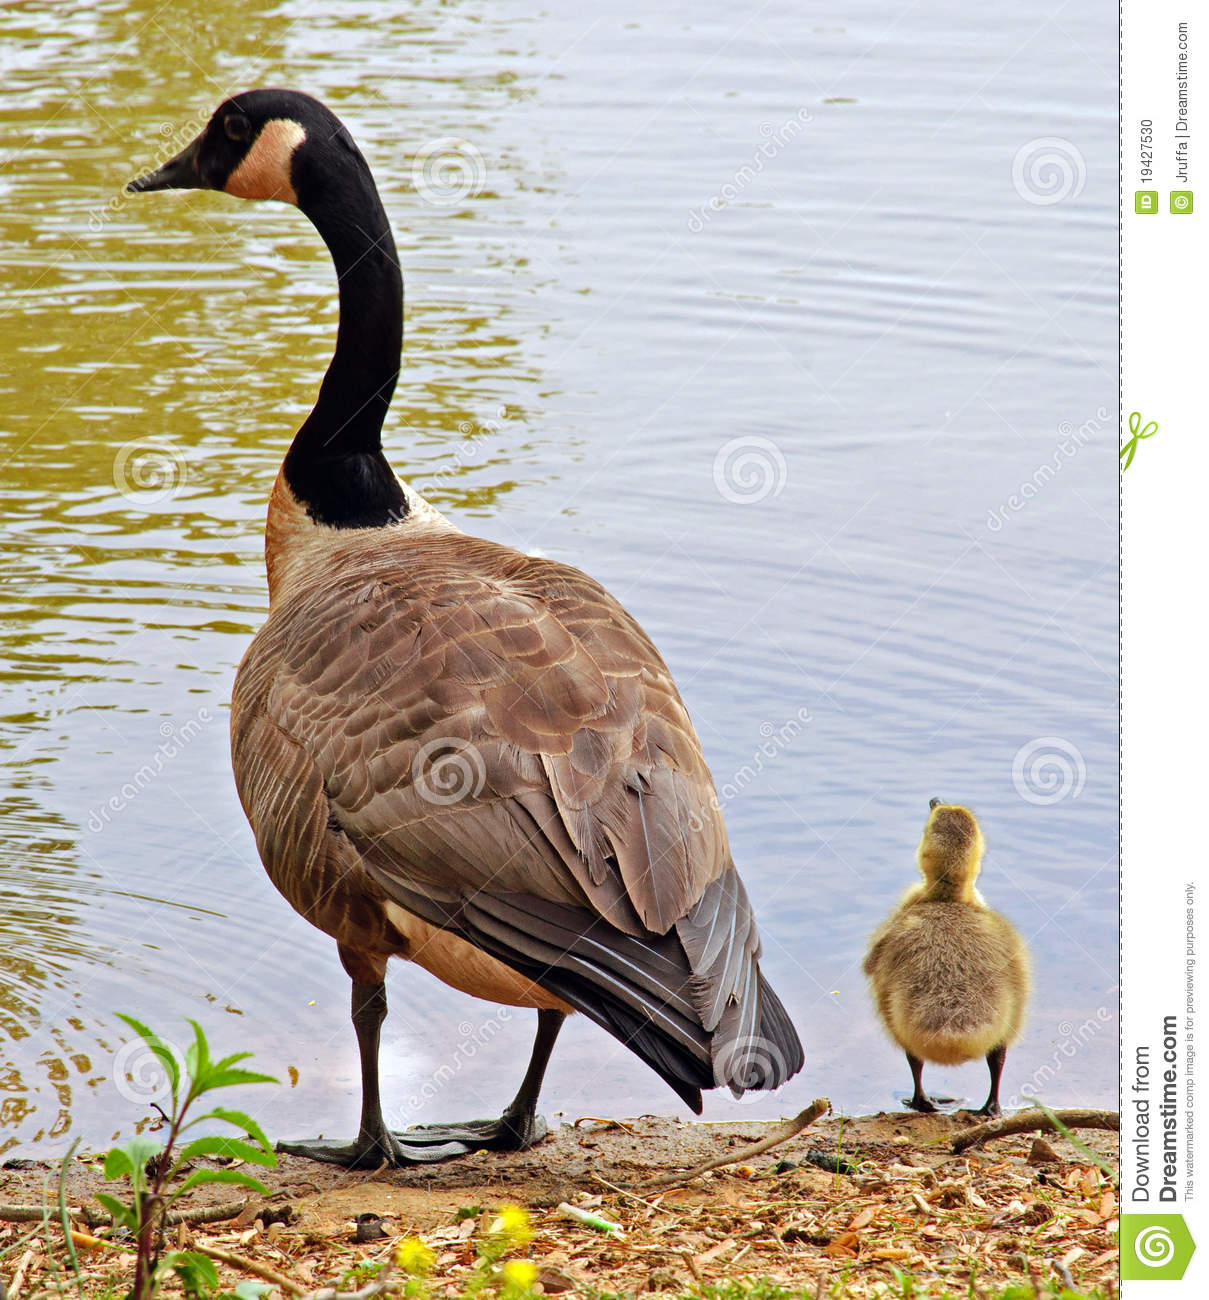 Clip Art Geese and Gosling's.